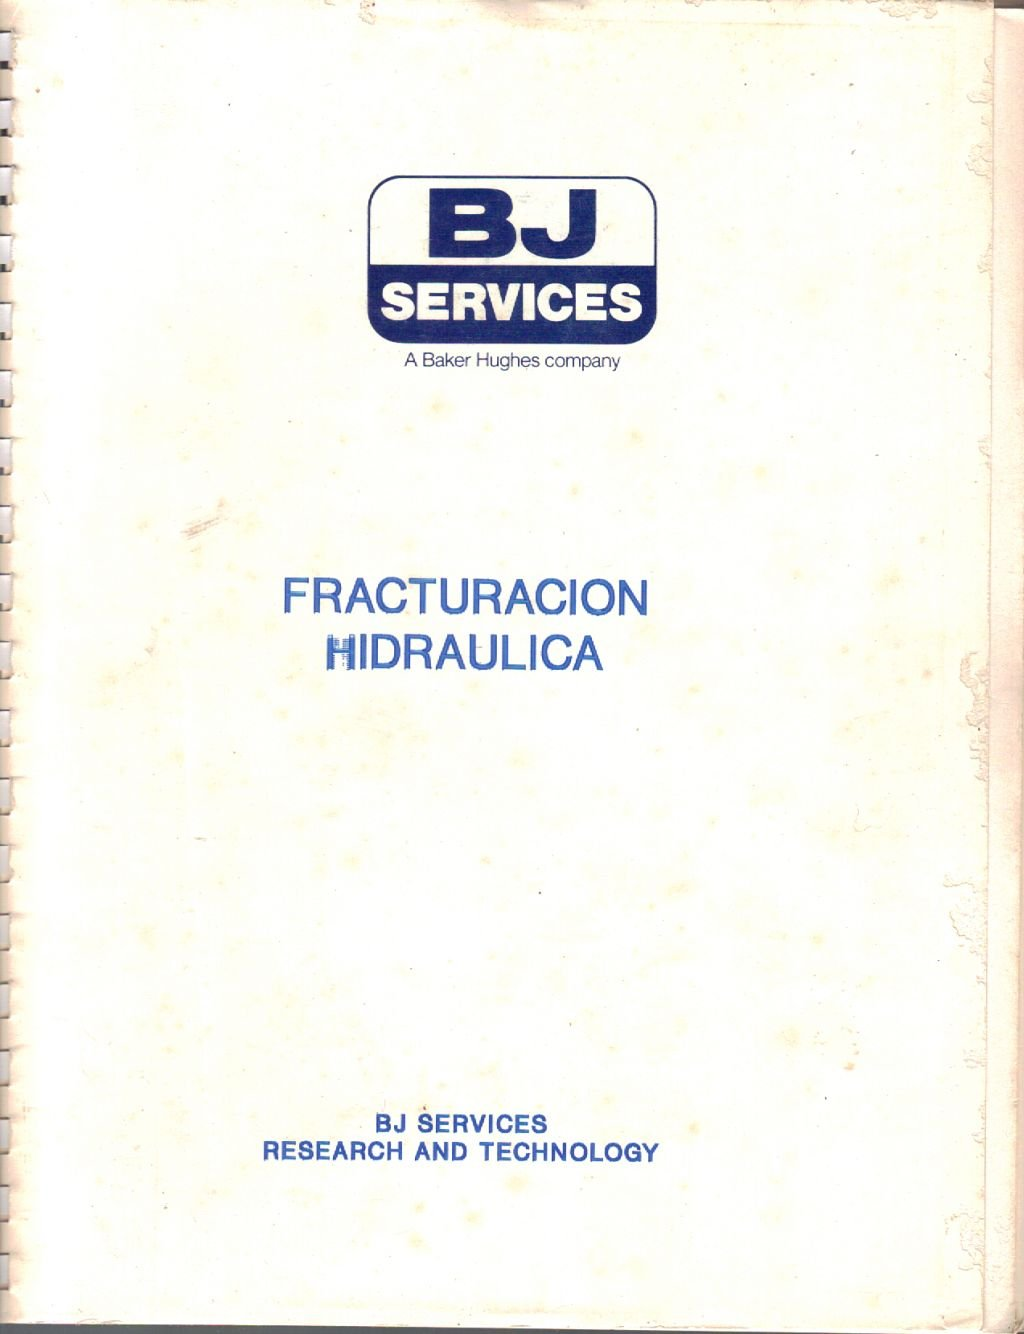 Fracturación Hidraulica (Hydraulic Fracturing): B  J  Services